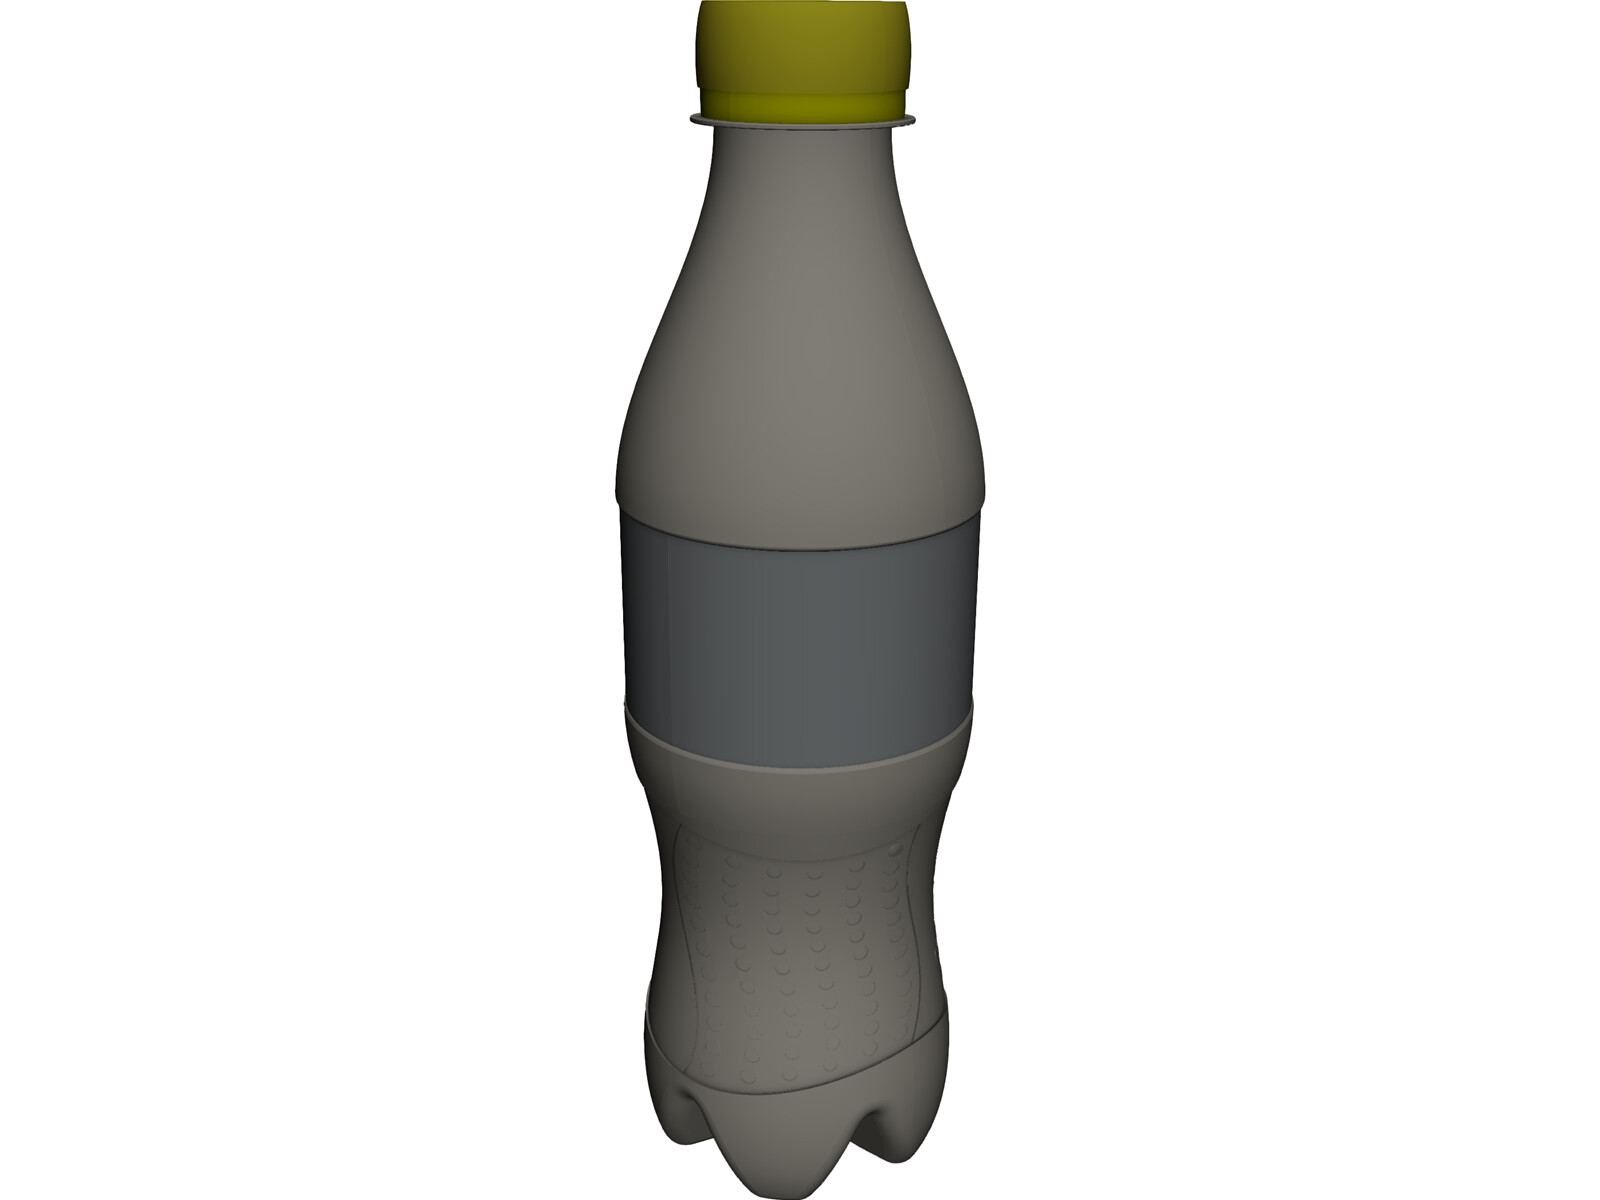 Cola Bottle 3D CAD Model